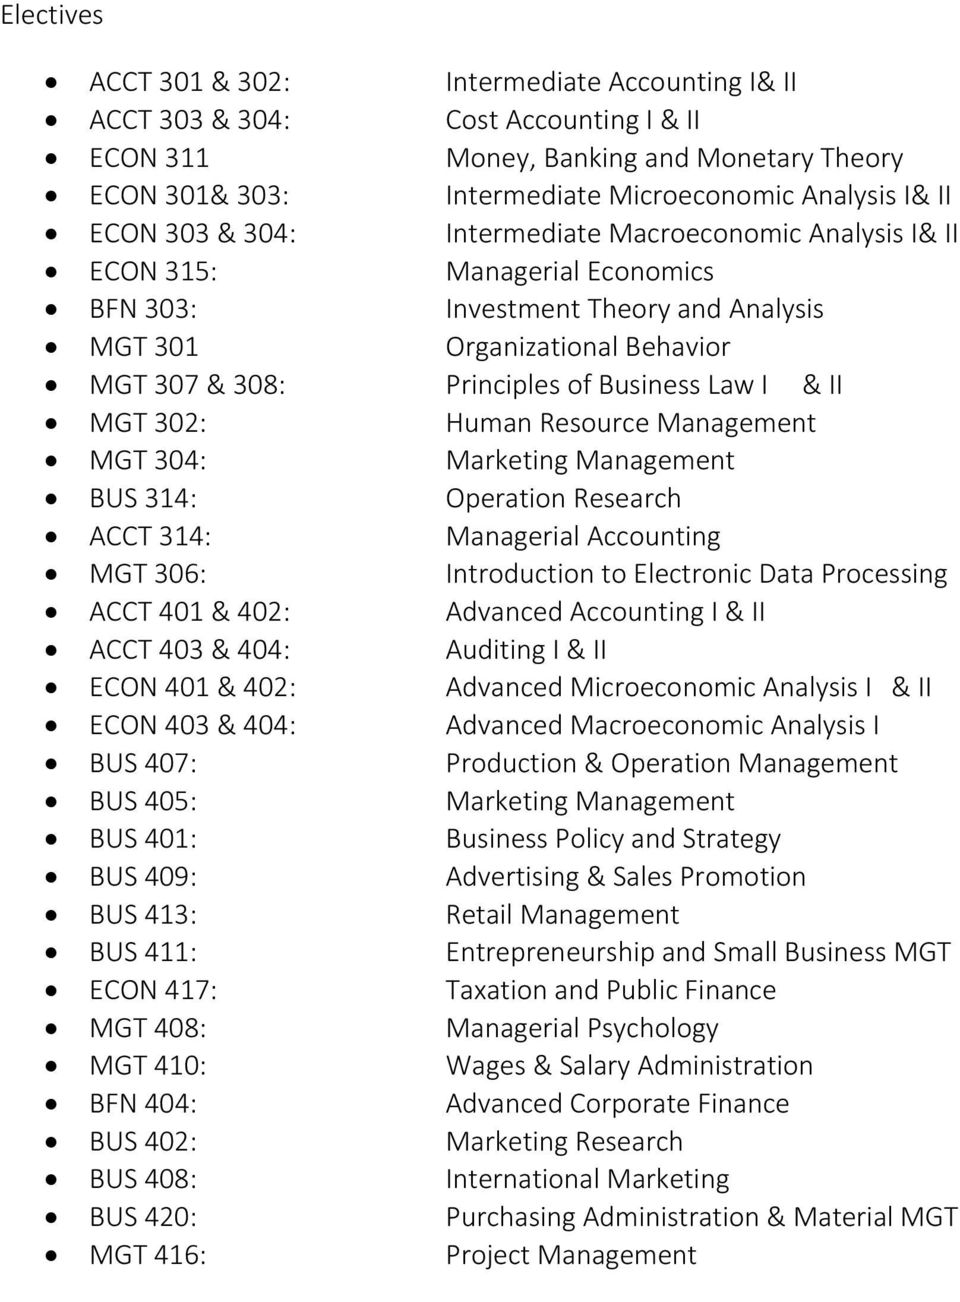 Human Resource Management MGT 04: Marketing Management BUS 14: Operation Research ACCT 14: Managerial Accounting MGT 06: Introduction to Electronic Data Processing ACCT 401 & 402: Advanced Accounting